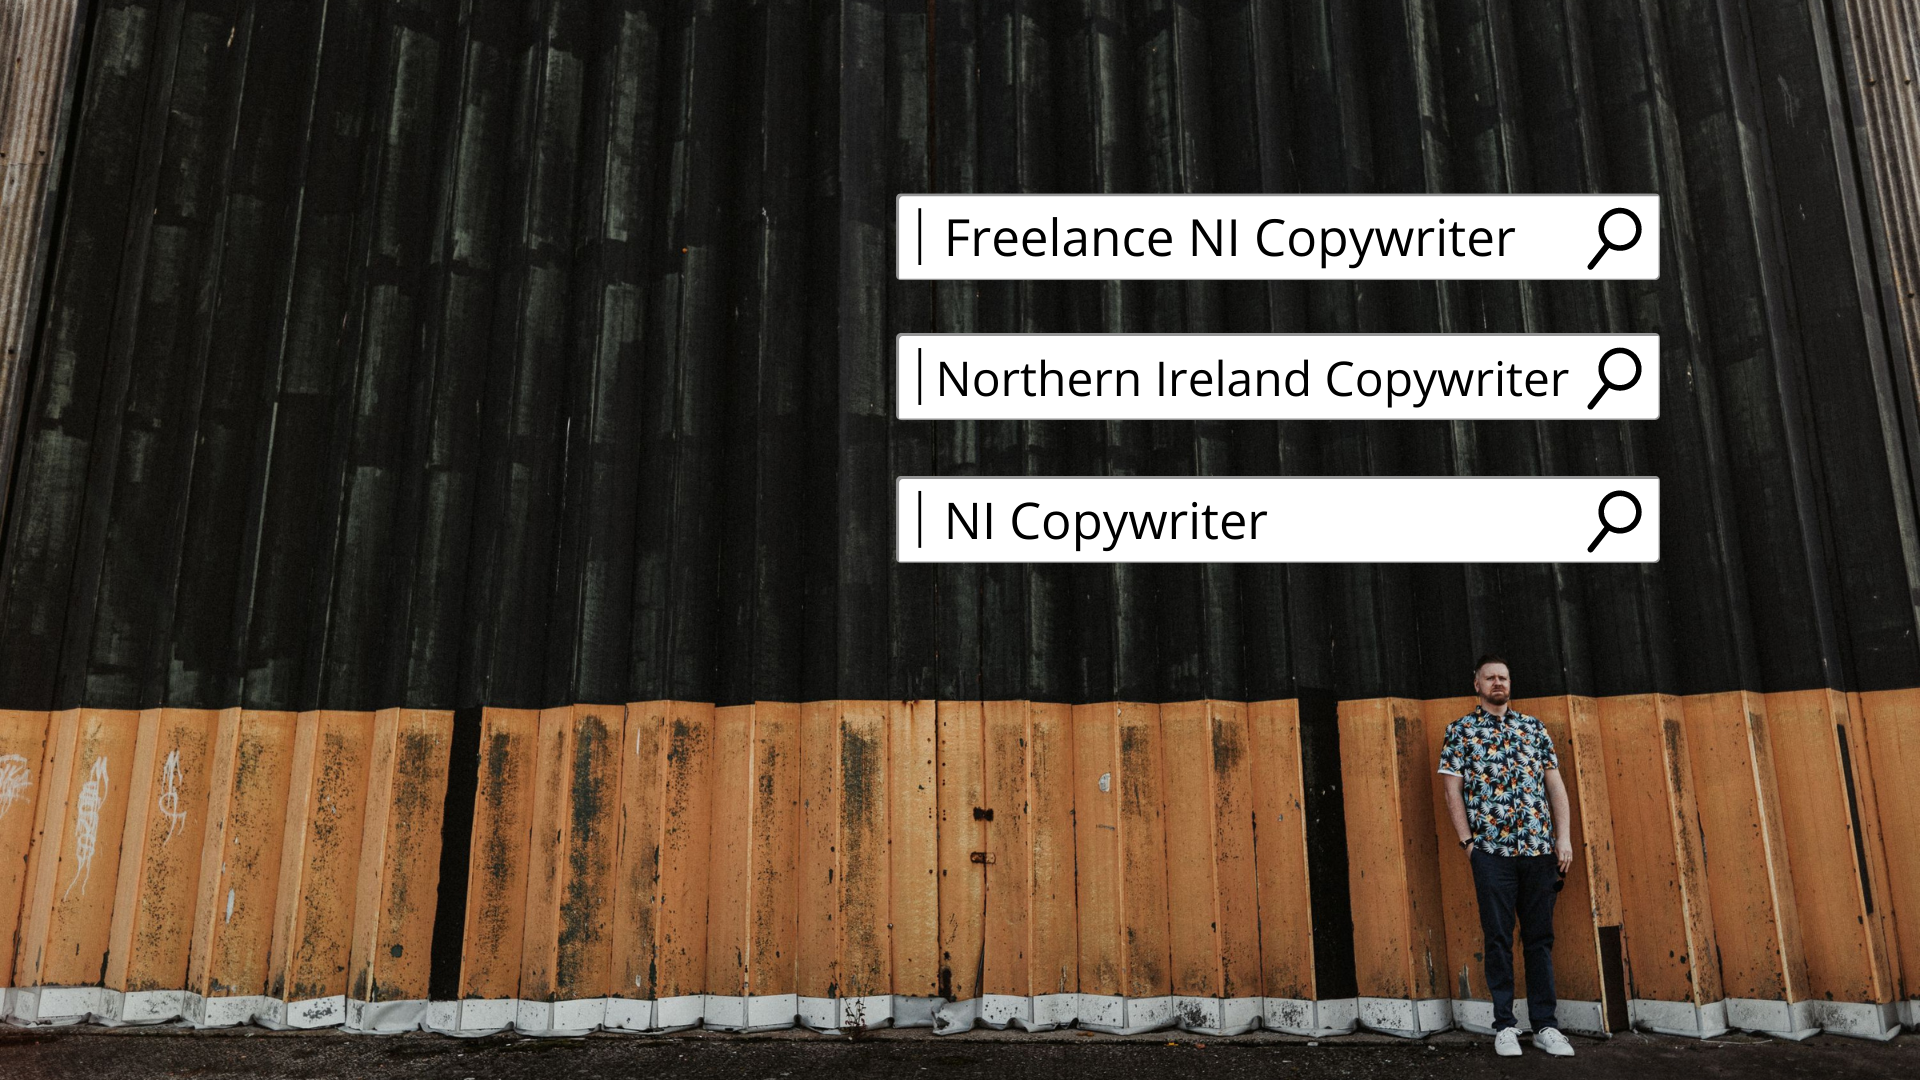 I wanted to rank on Google search for these three keywords and phrases. 1. Northern Ireland Copywriter 2. NI Copywriter 3. Freelance NI Copywriter